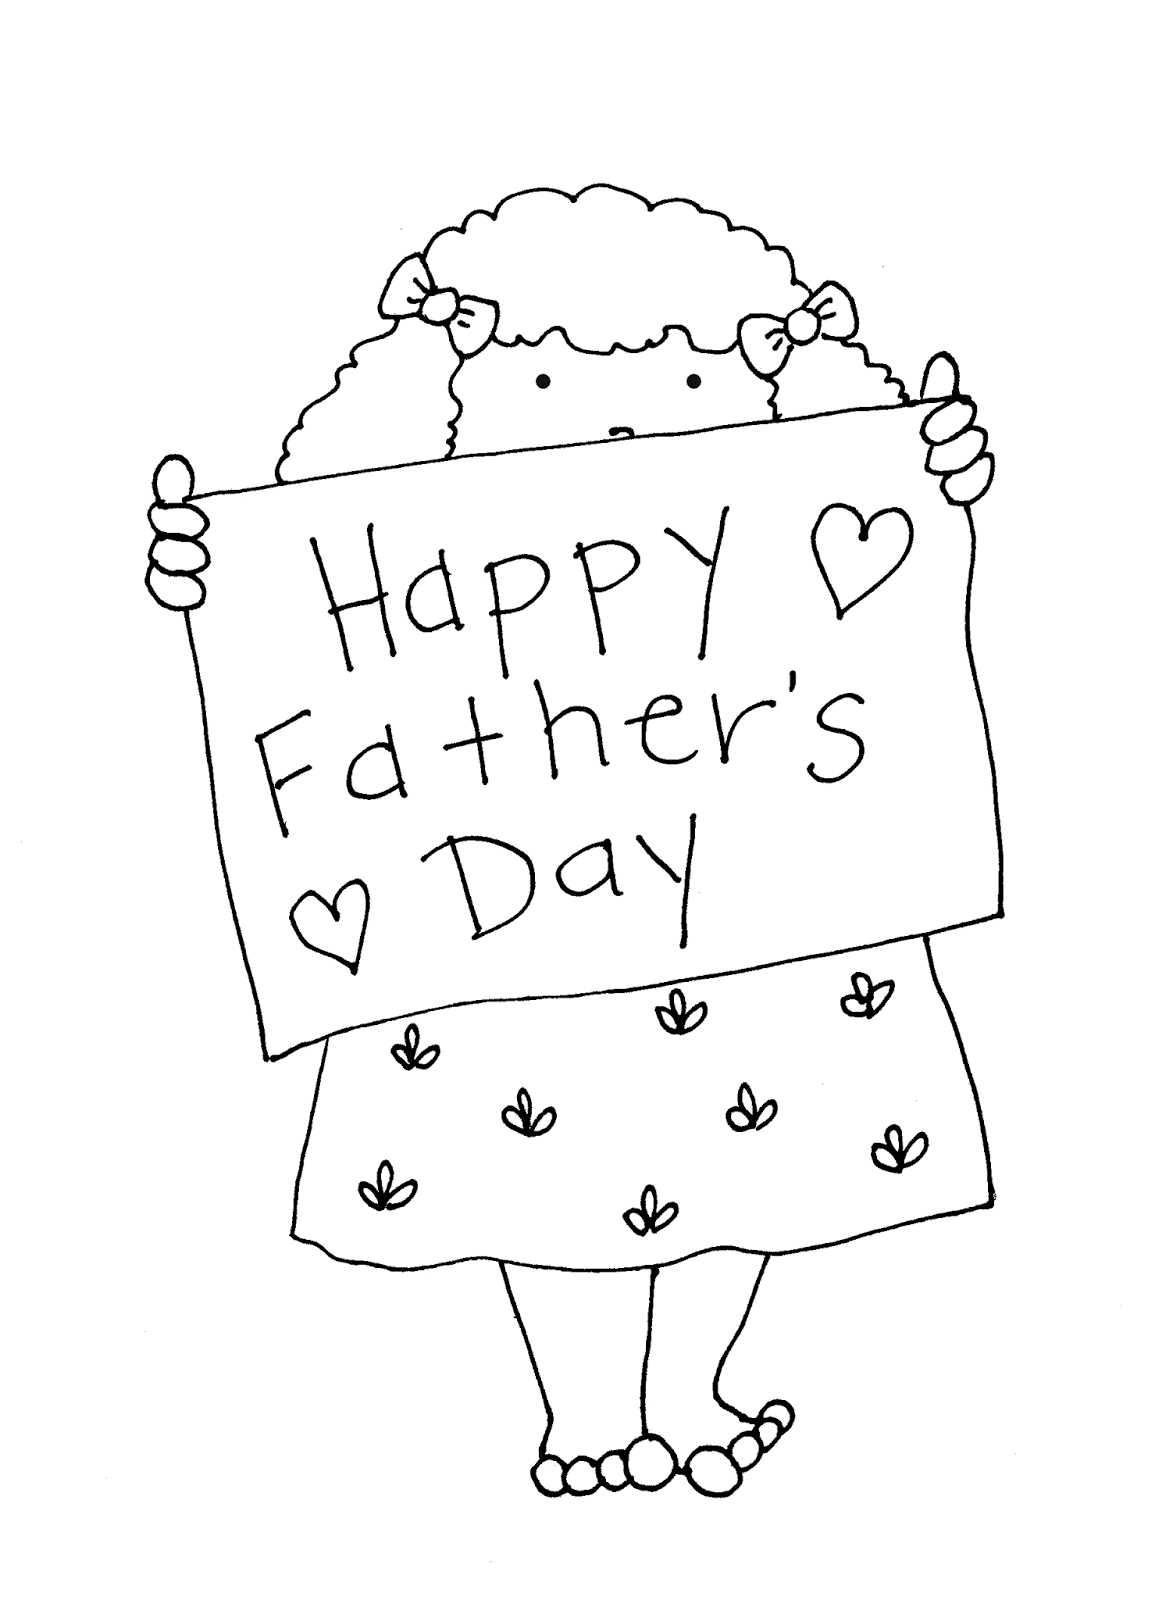 Happy fathers day drawing Pic